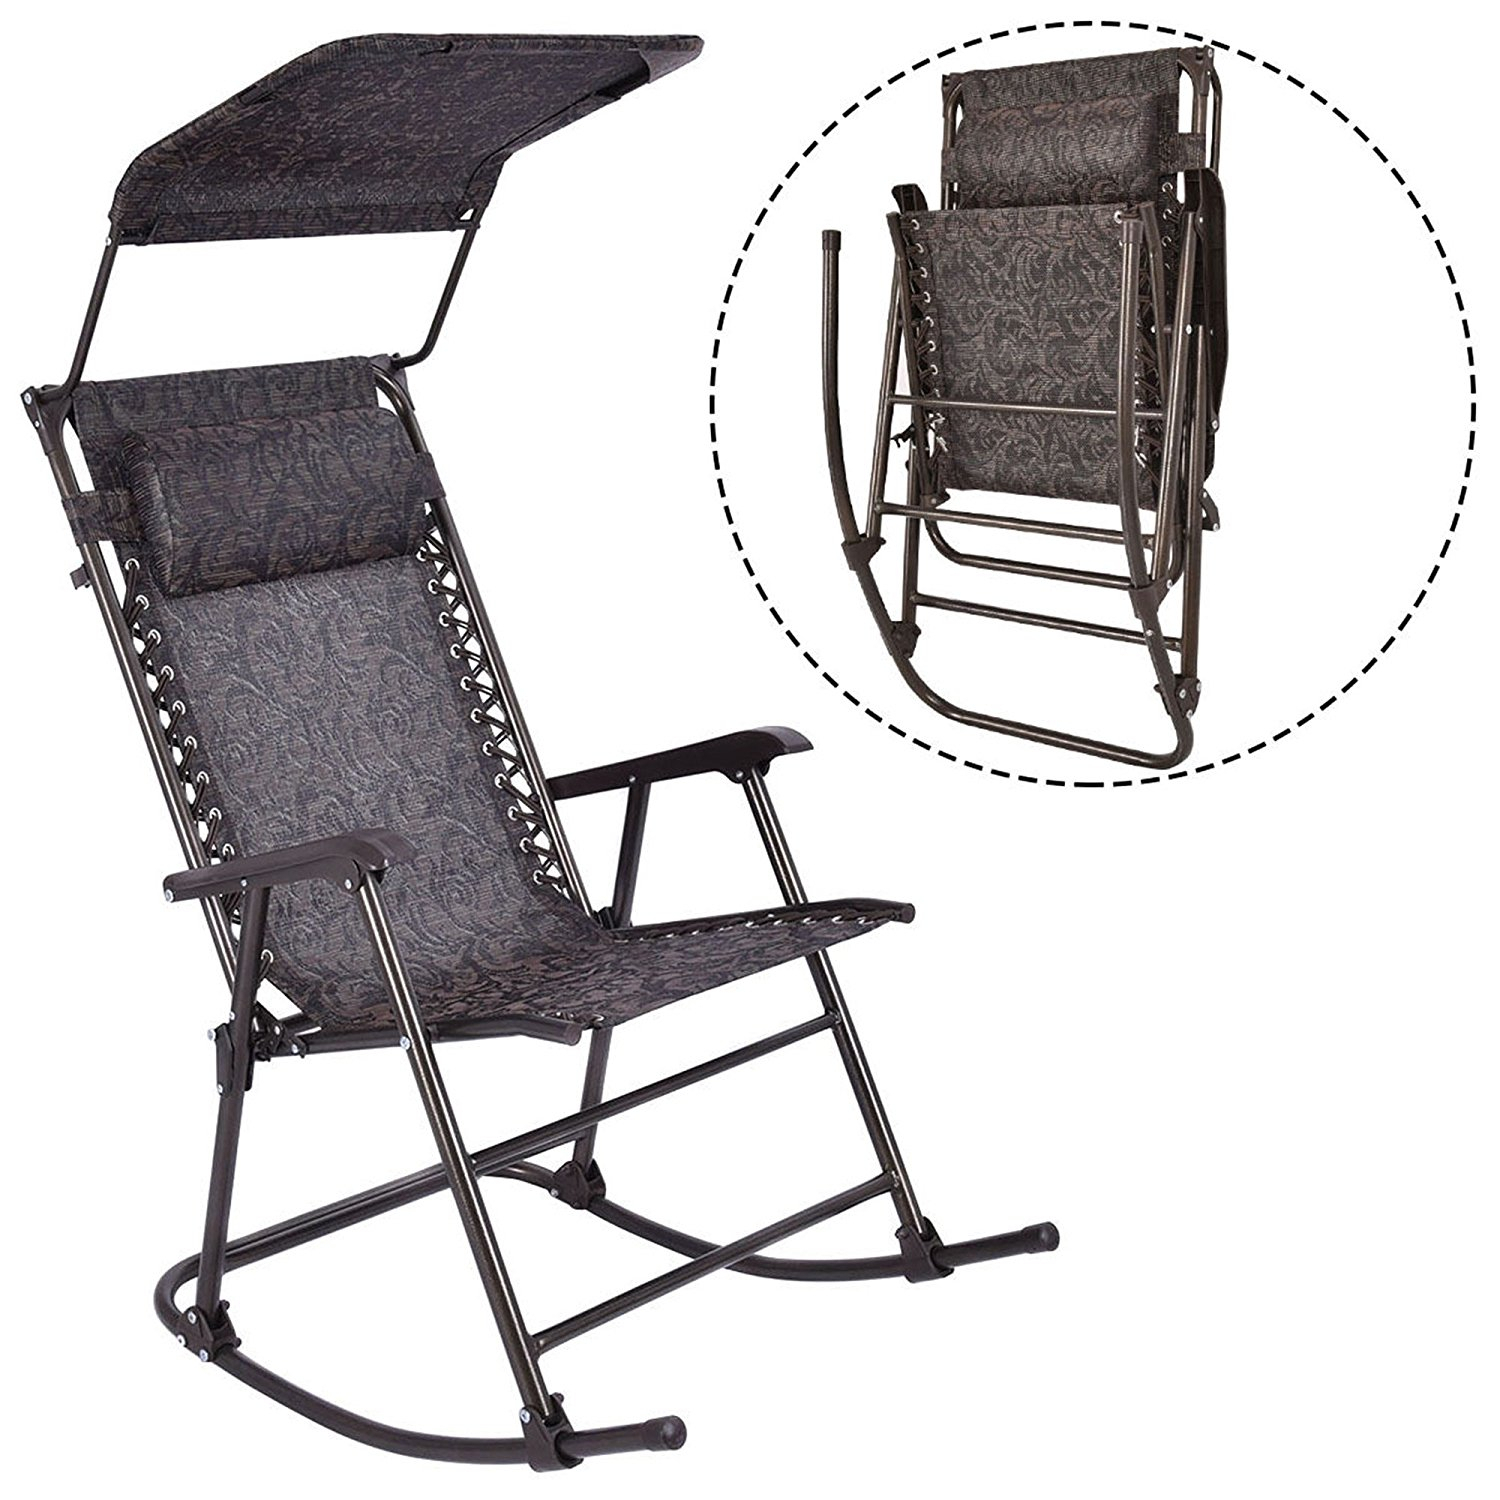 Buy Mac Sports Rnr B Folding Rocking Chair In Cheap Price On With Regard To Folding Bentwood Rocking Chairs With Extendable Footrest And Removable Cover (#3 of 20)